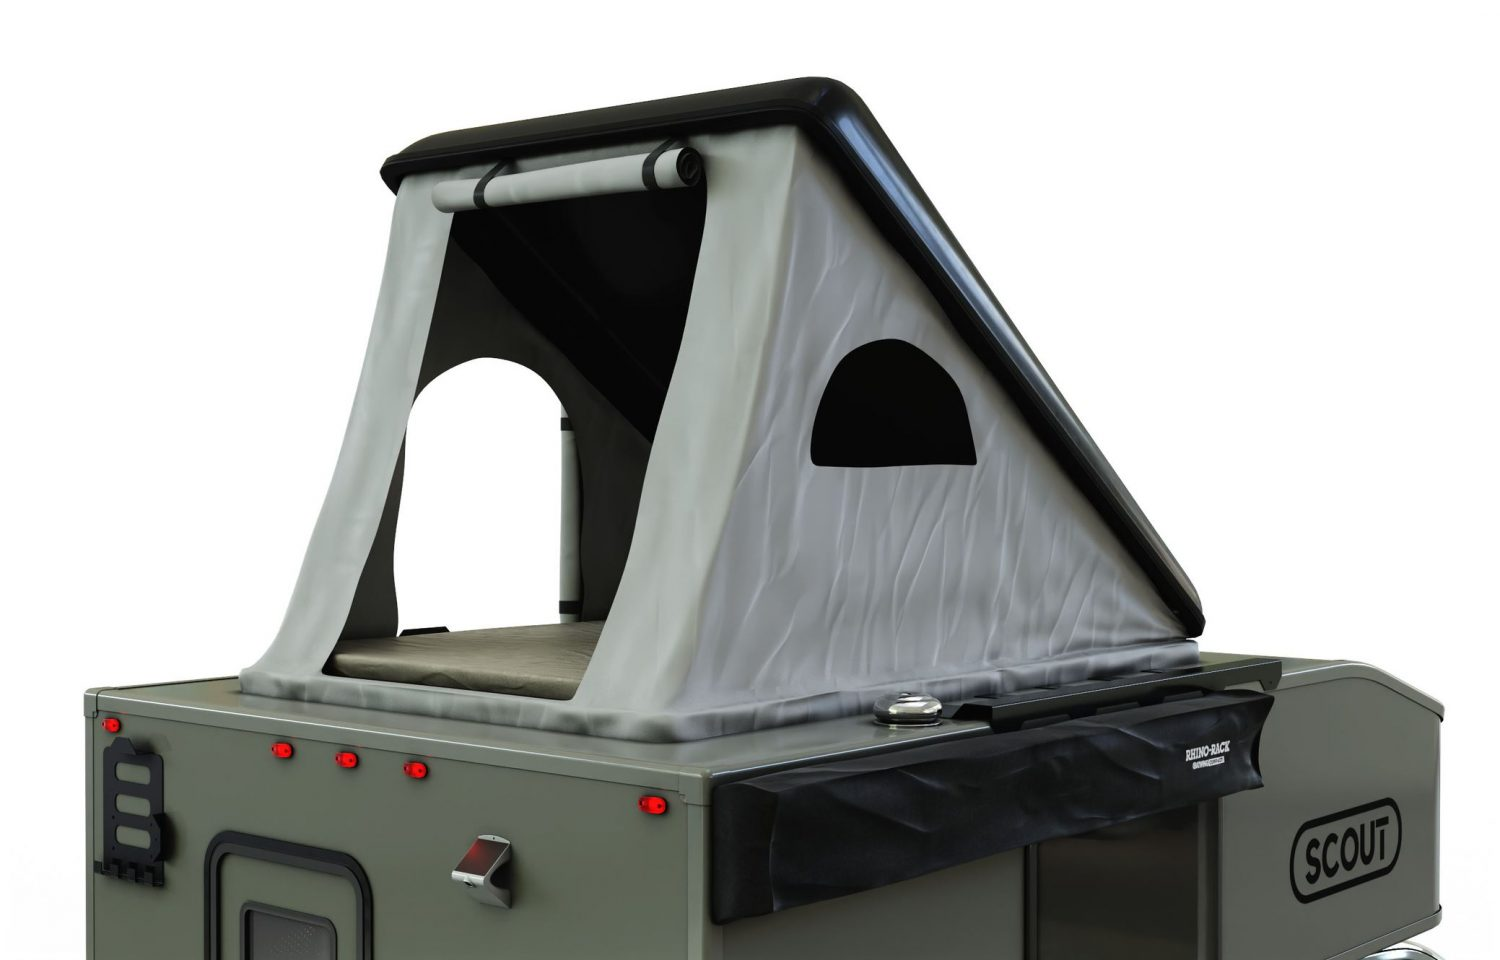 Scout campers kenai truck camper roof top tent